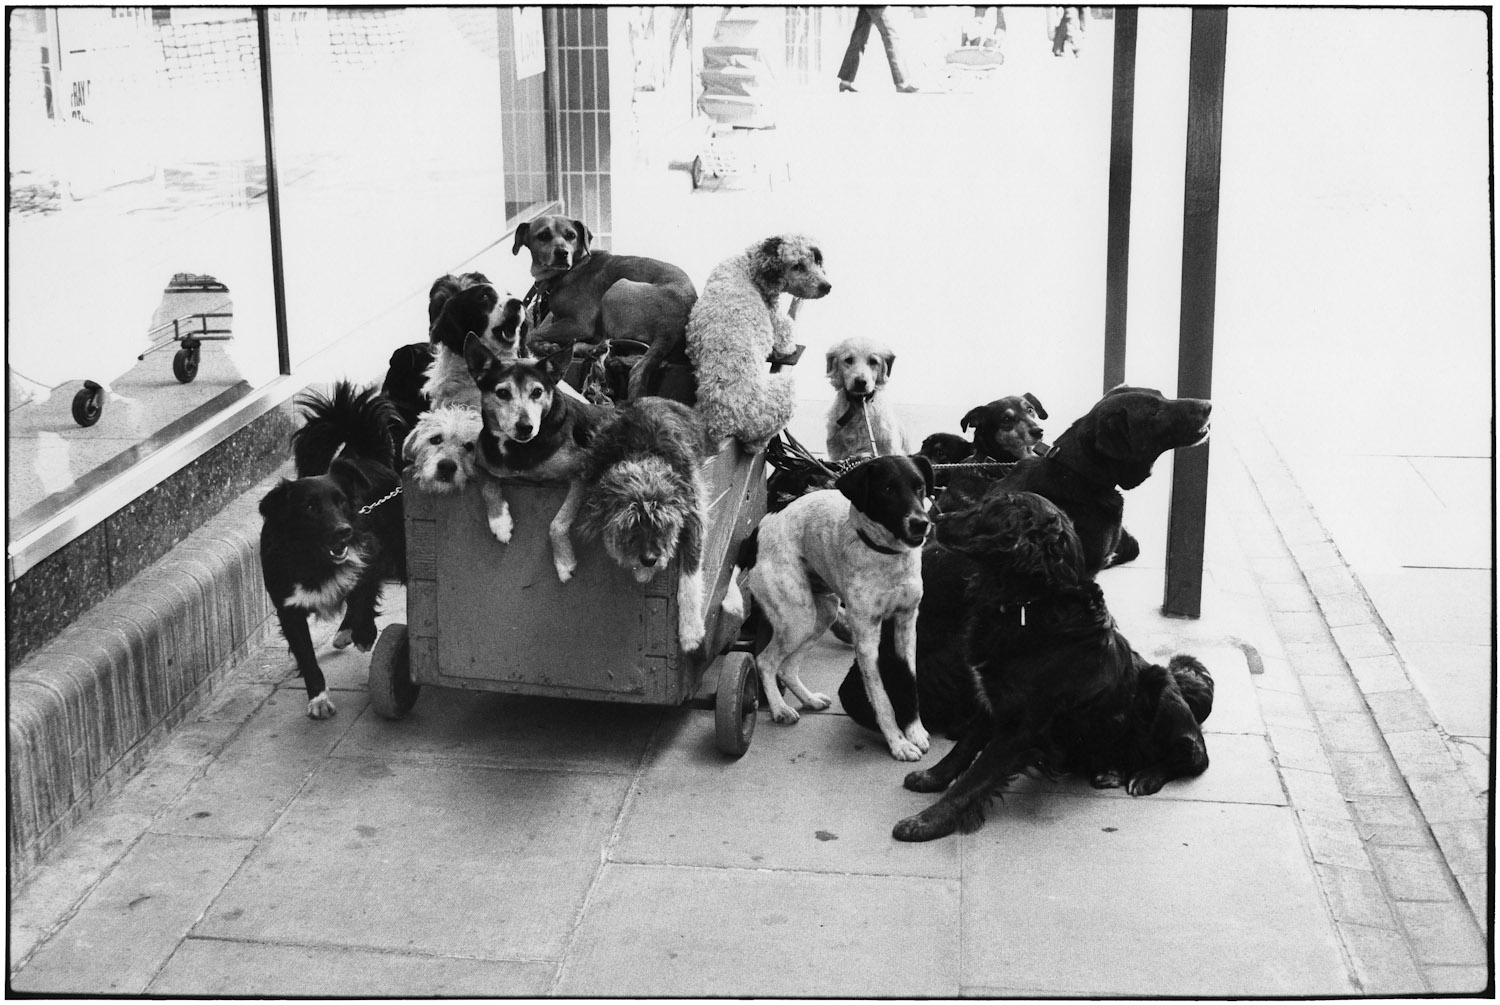 England, 1974 Elliott said the crazy old lady with all these dogs yelled at him for taking this.